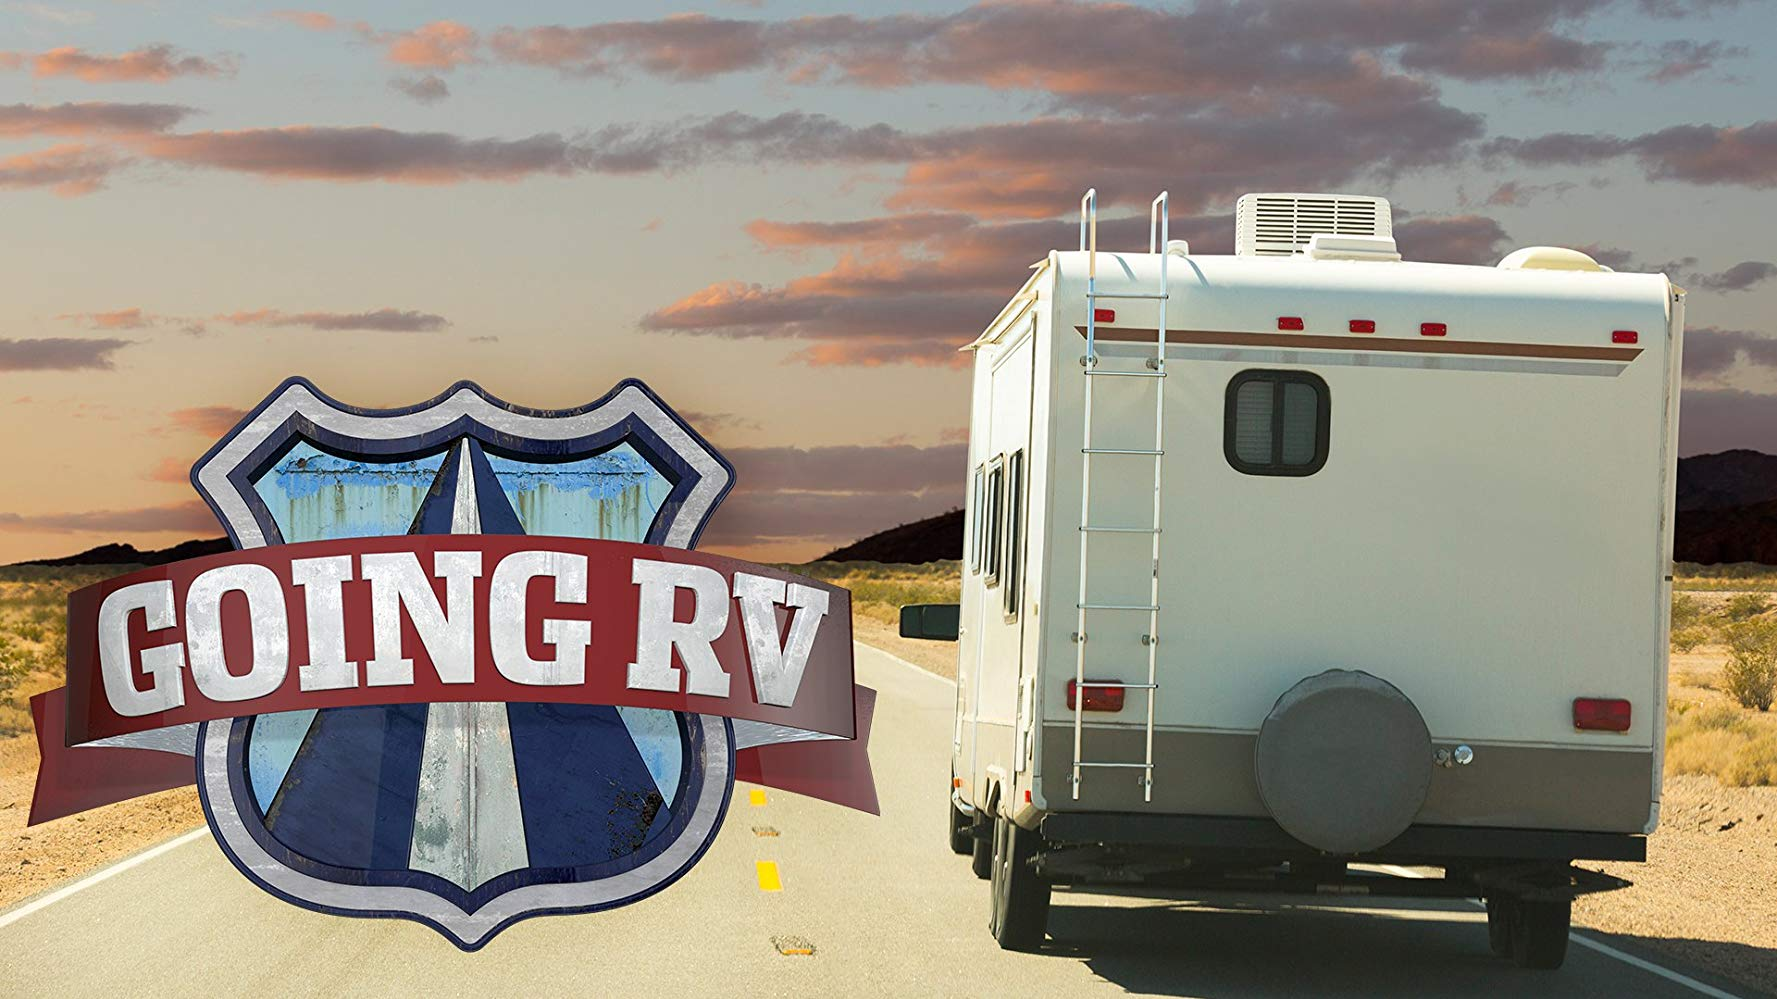 Going RV S01E08 720p HDTV x264-dotTV